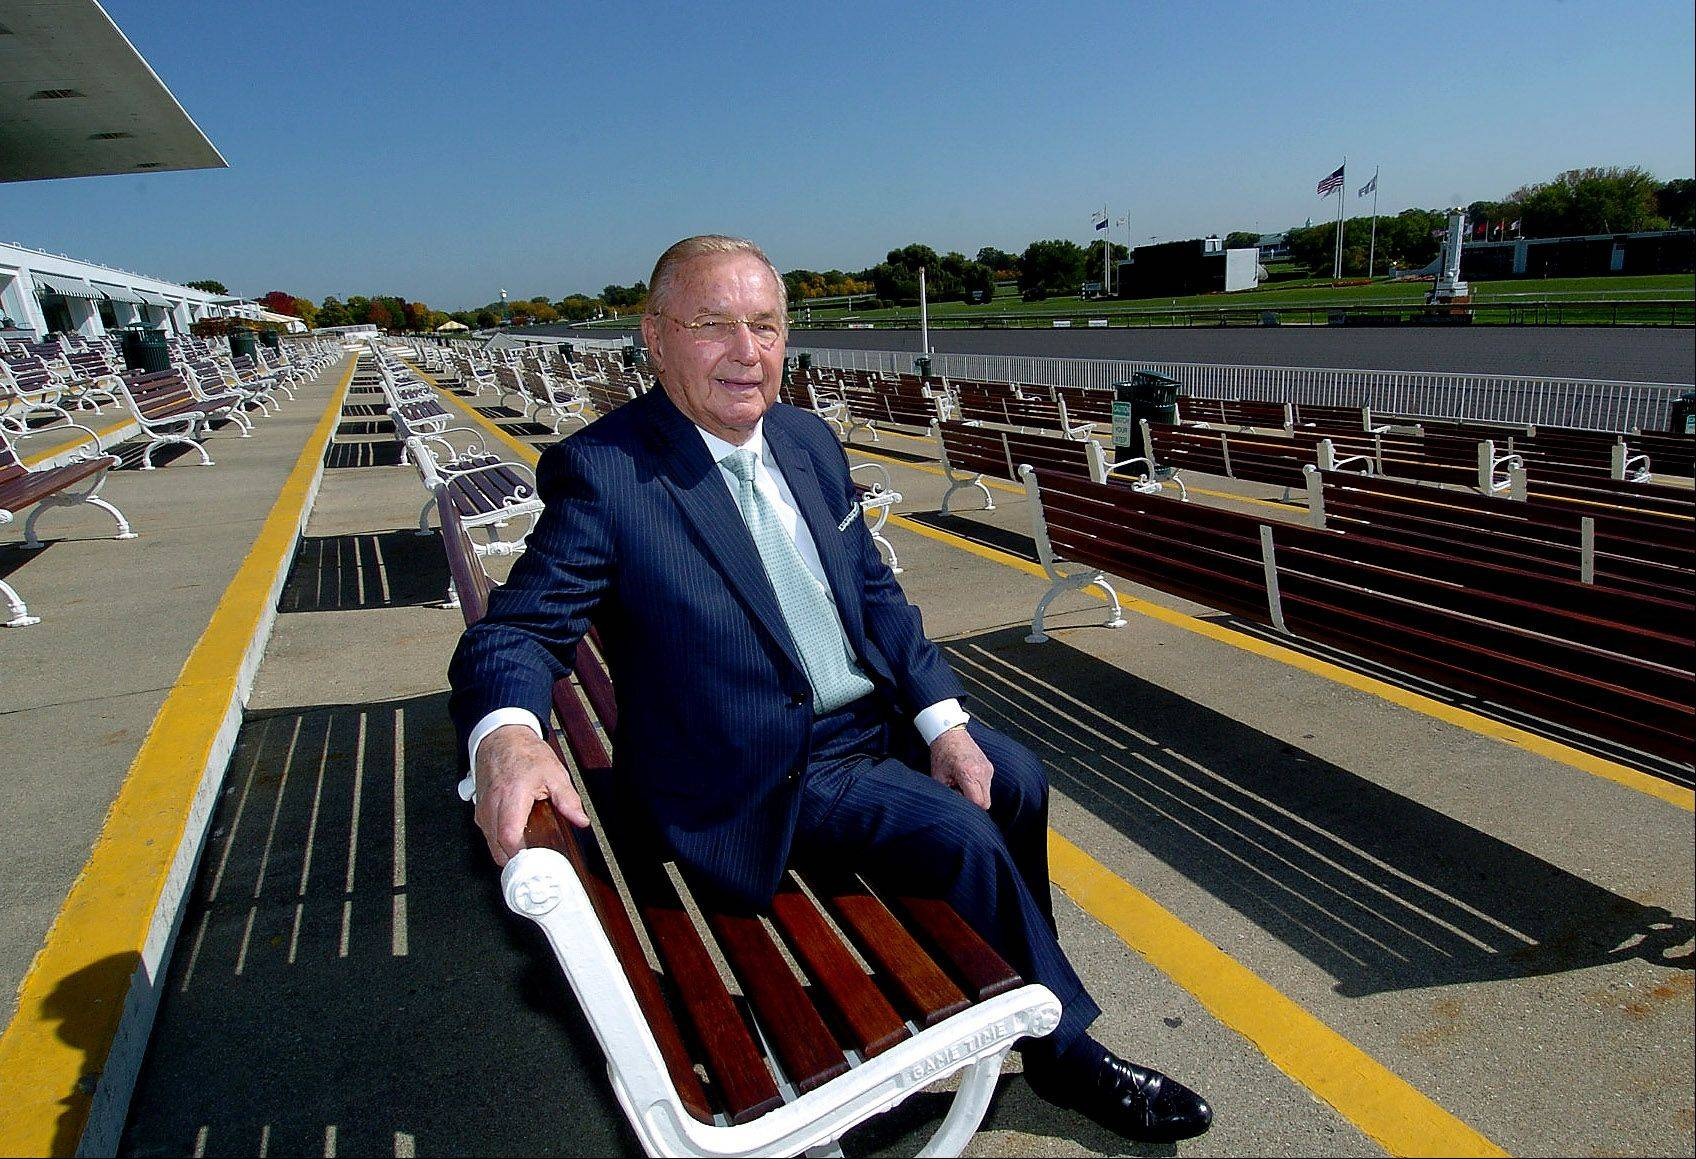 Arlington Park Chairman Richard Duchossois is still an ardent advocate for slot machines at the racetrack, but says additional gambling isn't the only solution to the horse-racing industries woes.